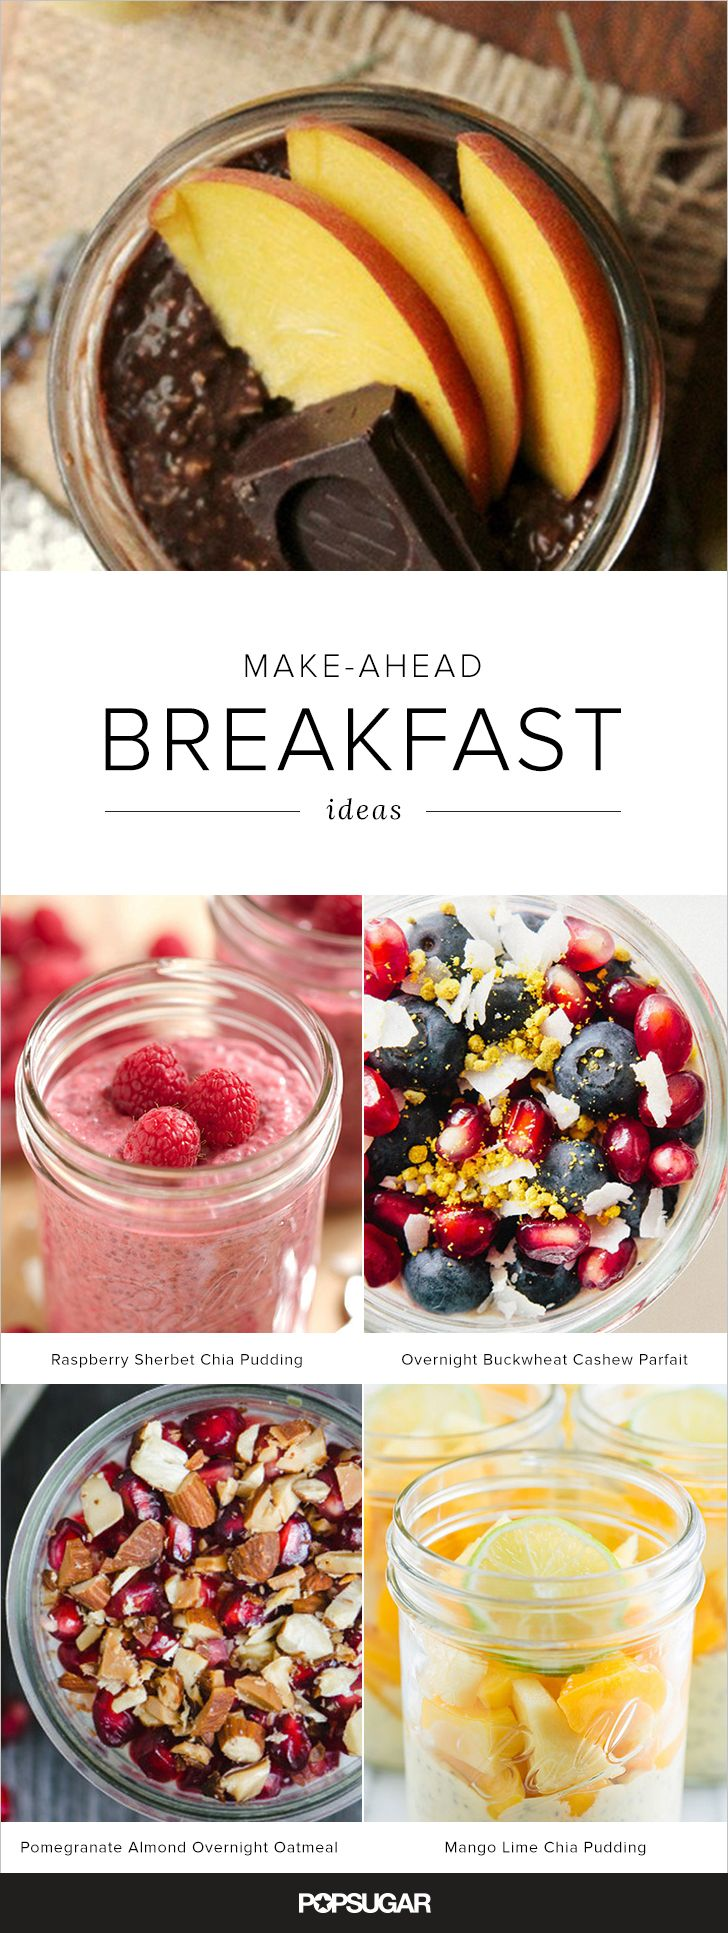 Mason jar meals aren  39 t limited to salads  there are plenty of make ahead breakfasts that can be given the same treatment   Keep reading for grab and go recipe inspiration to start your morning off right